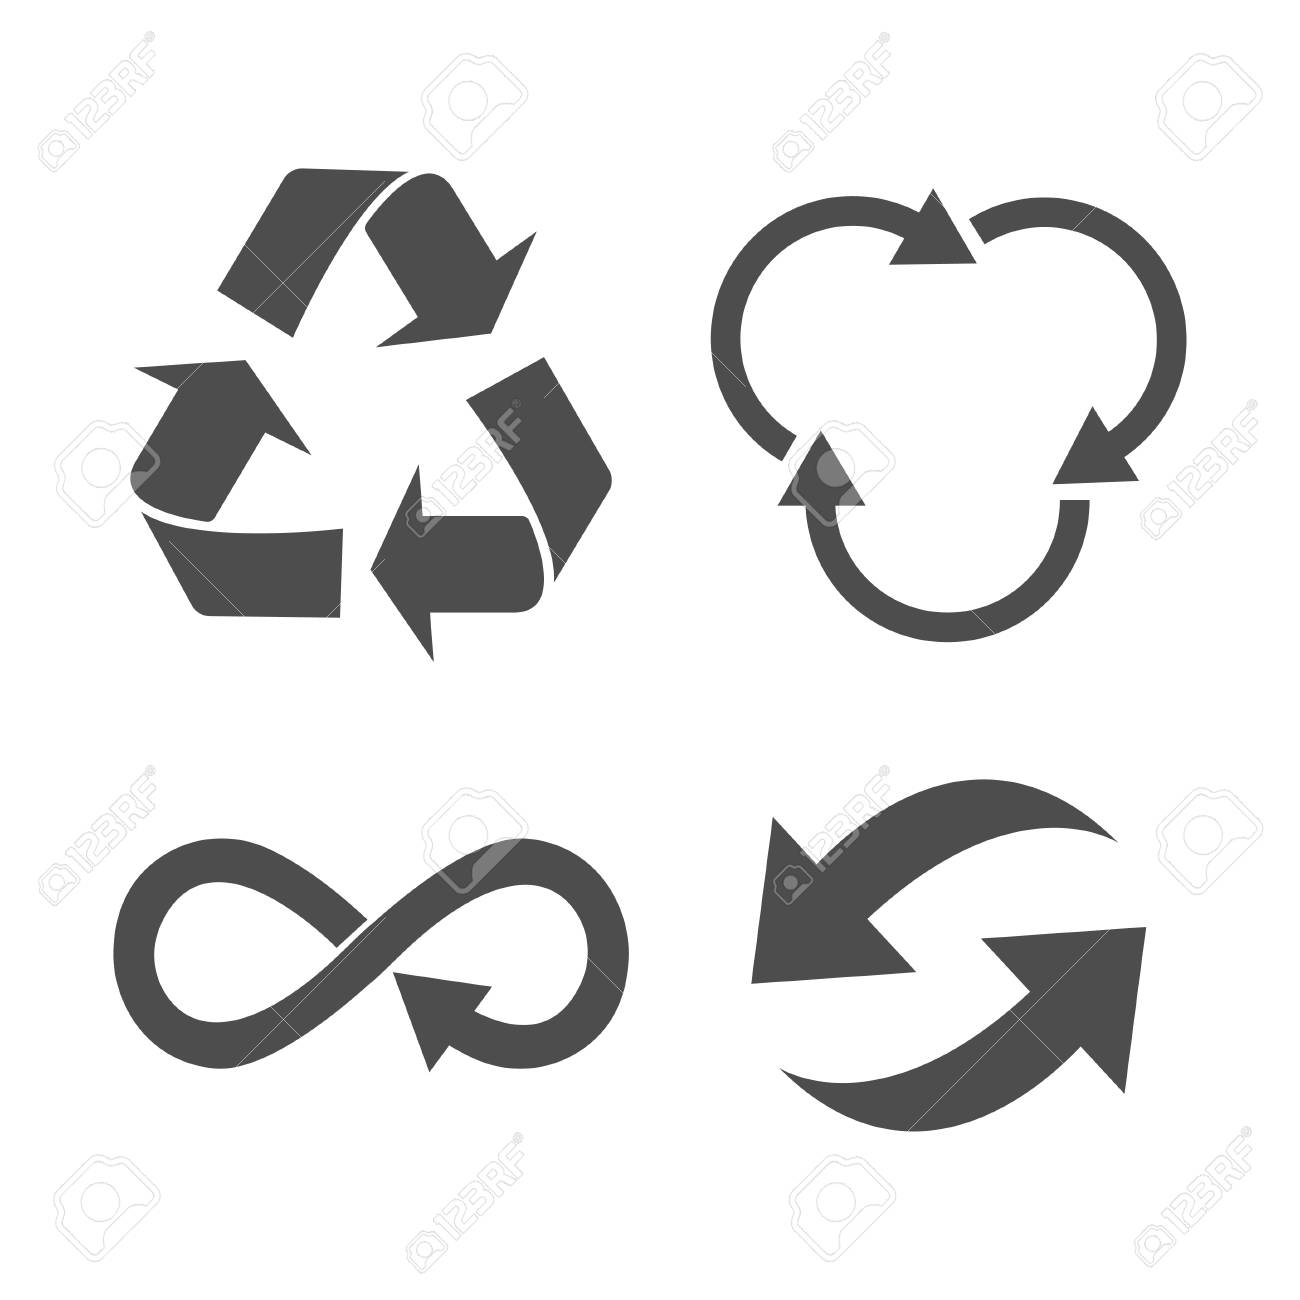 Eco Organic Ecology Recycle Symbol Or Sign Royalty Free Cliparts